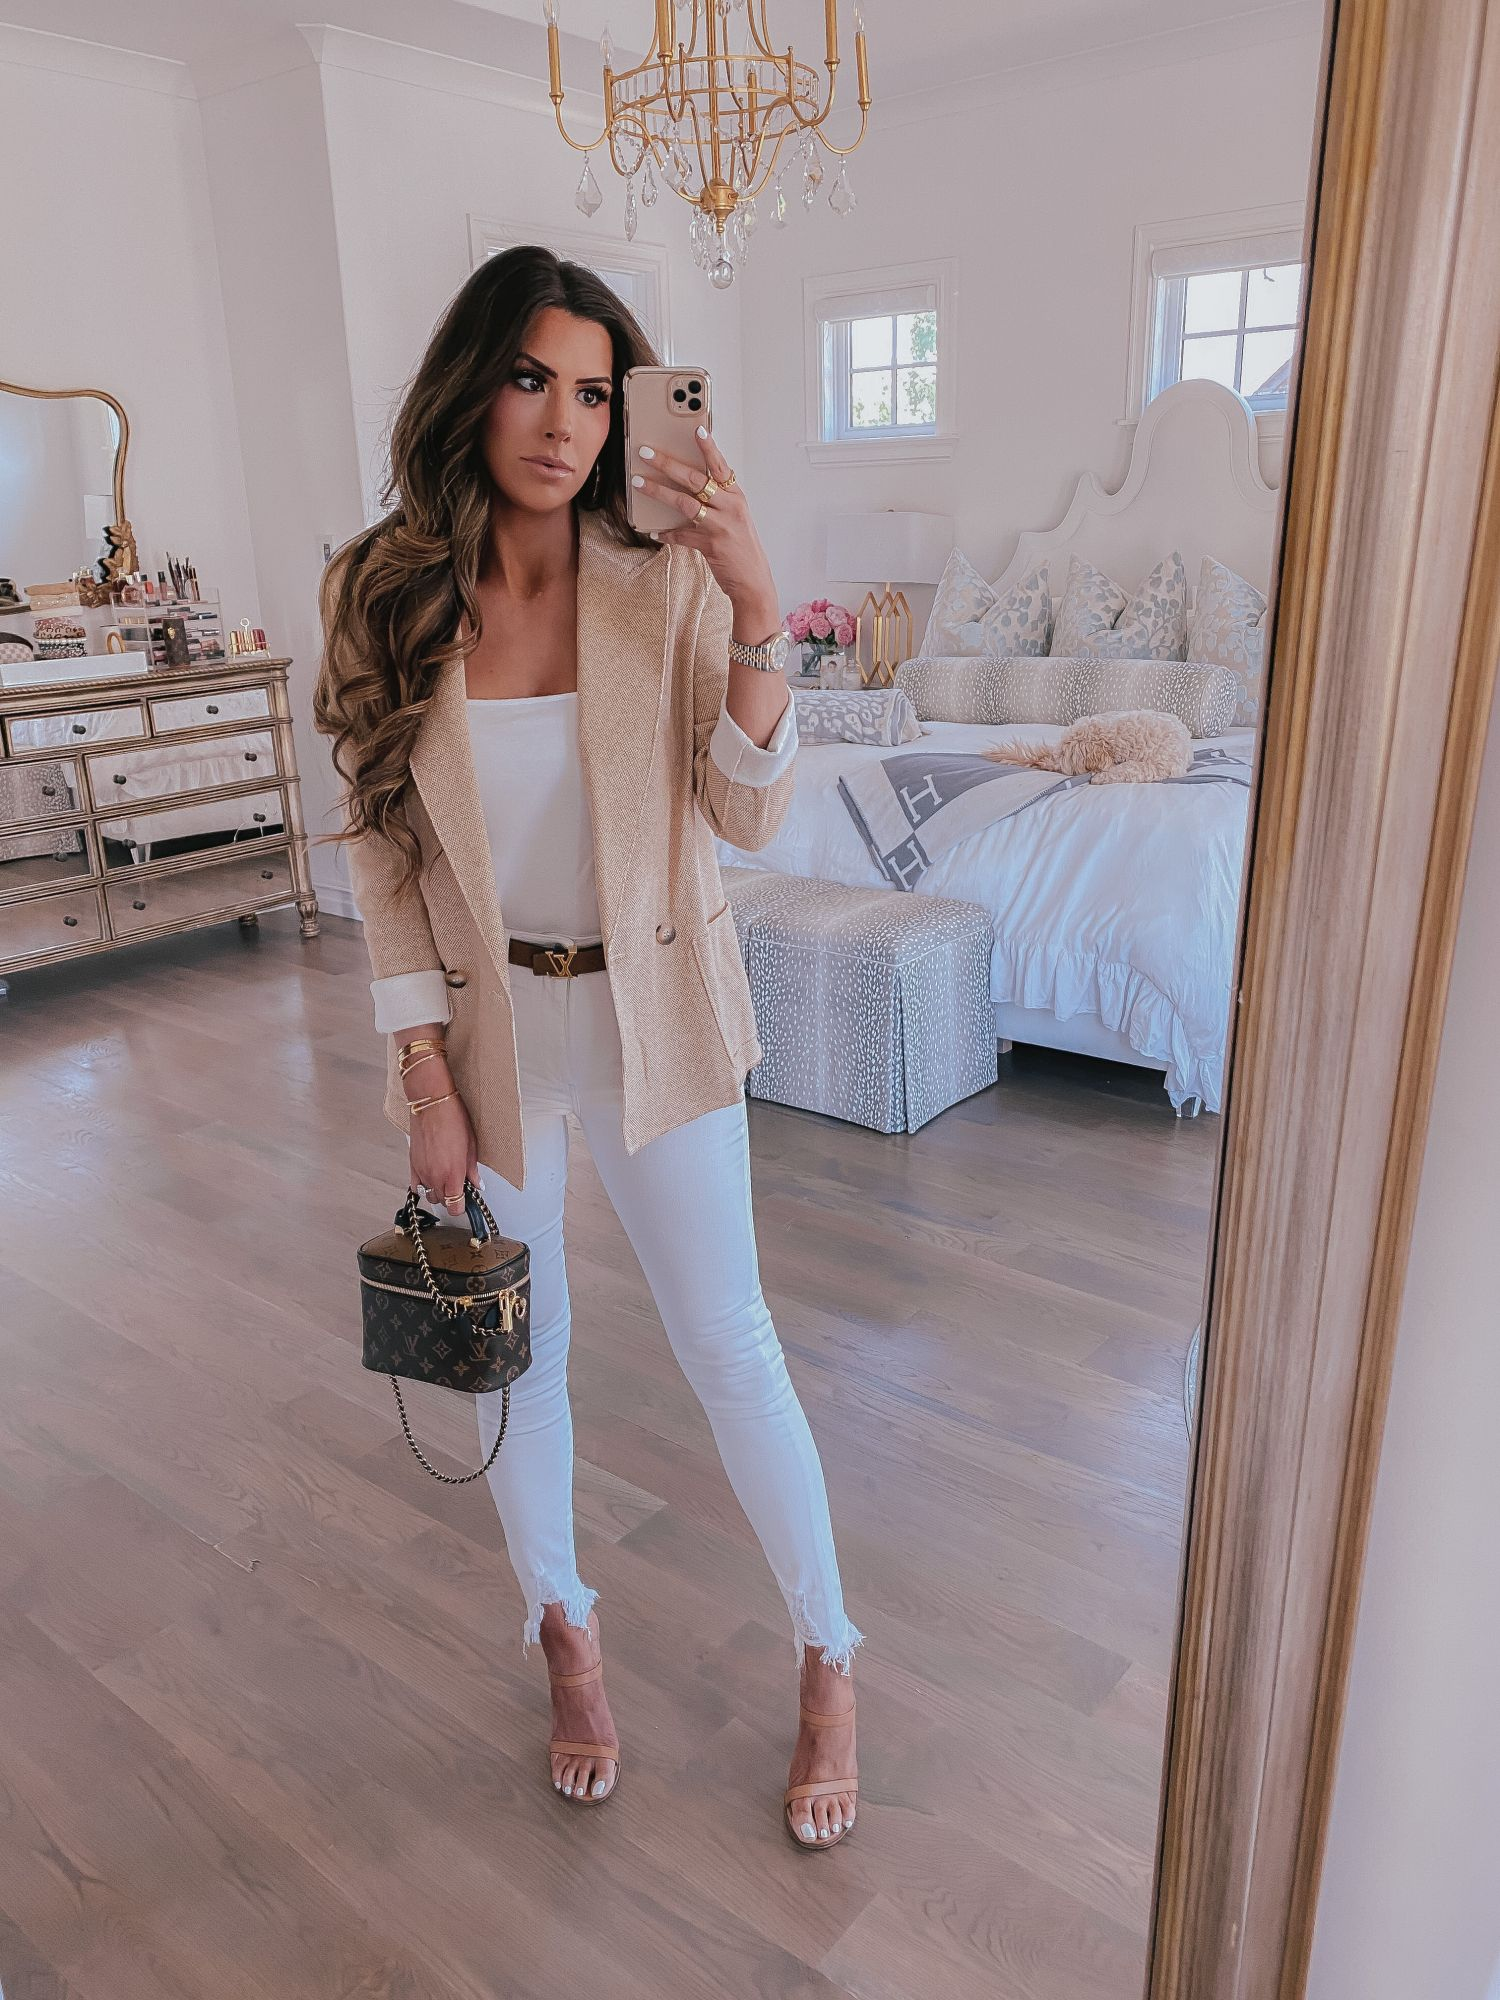 Spring Fashion Outfit Ideas 2020 Pinterest White Jean Outfit Idea Spring 2020 Louis Vuitton Vanity Bag Pm In 2020 Outfits White Jeans Outfit Spring Fashion Outfits